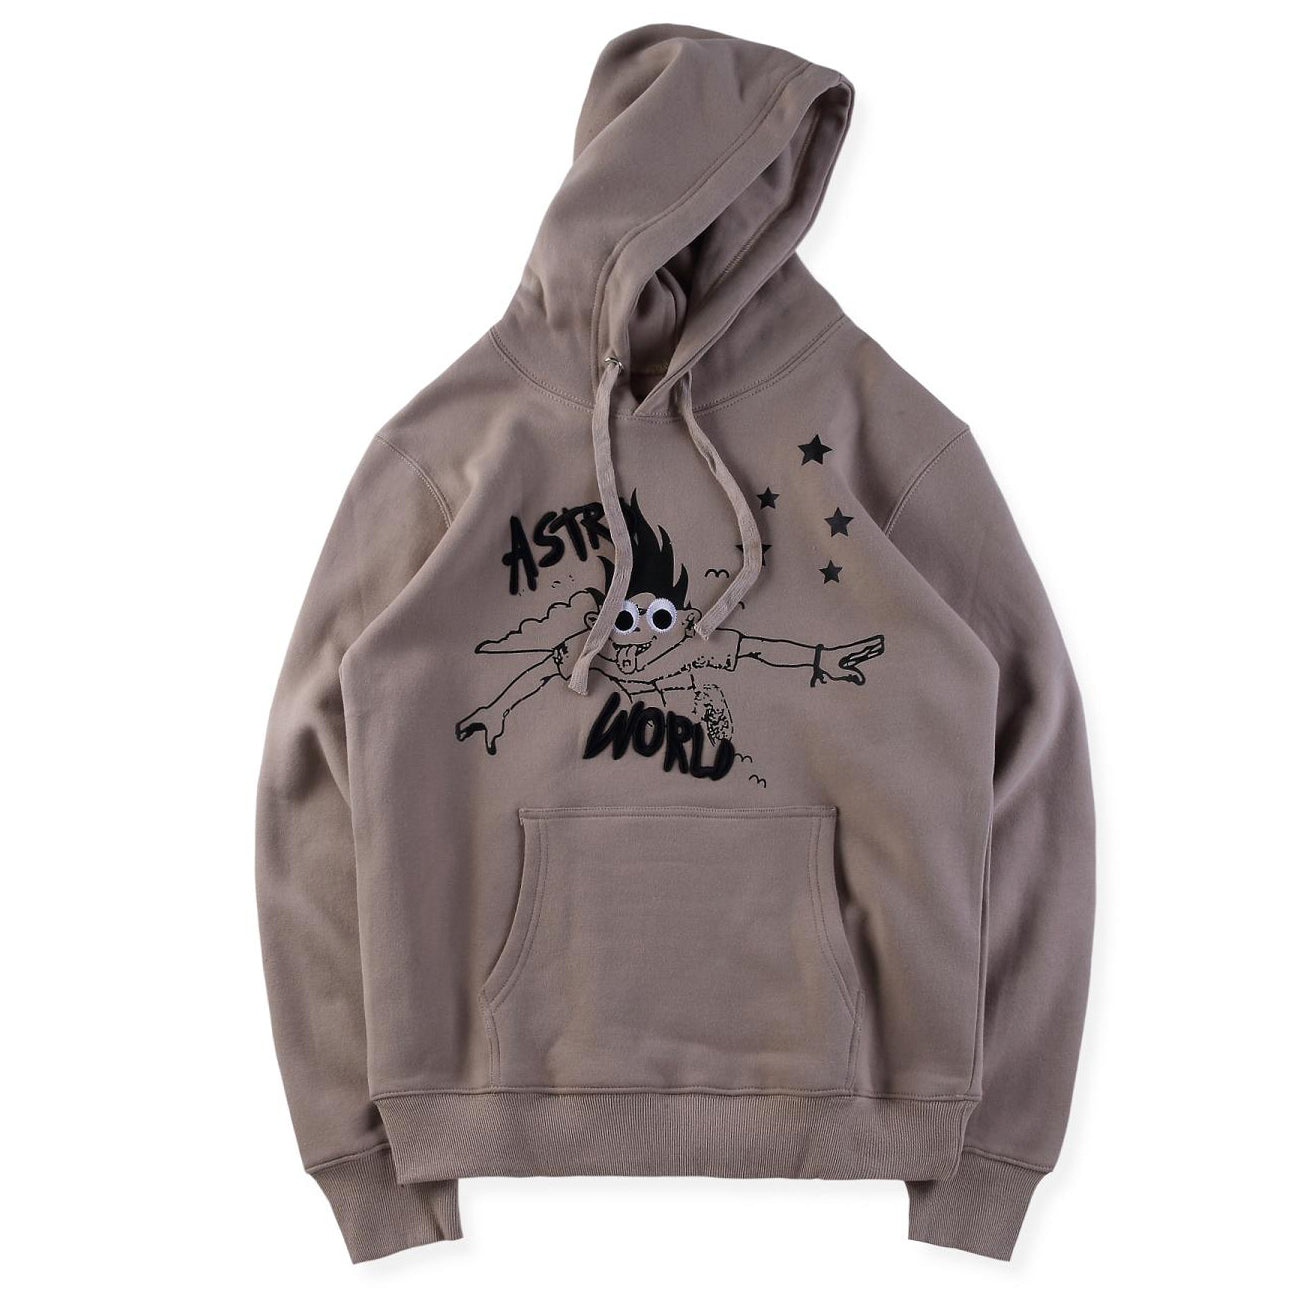 Look Mom I Can Fly Embroidered Hoodie Astroworld (Best Quality) - AstroWorlds Merch【Limited Collection 】